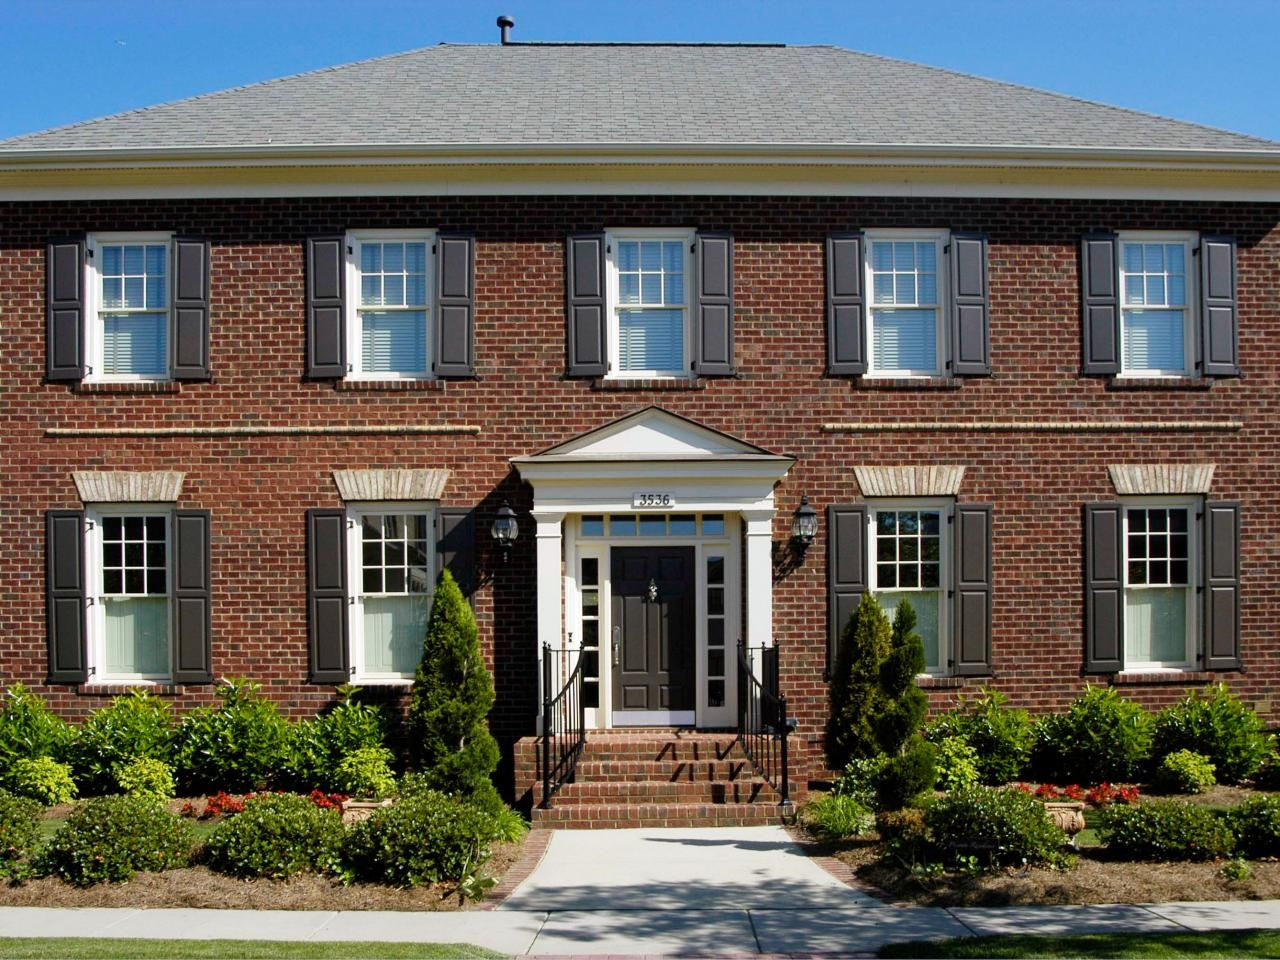 75 best shutter and door ideas for red brick house images on